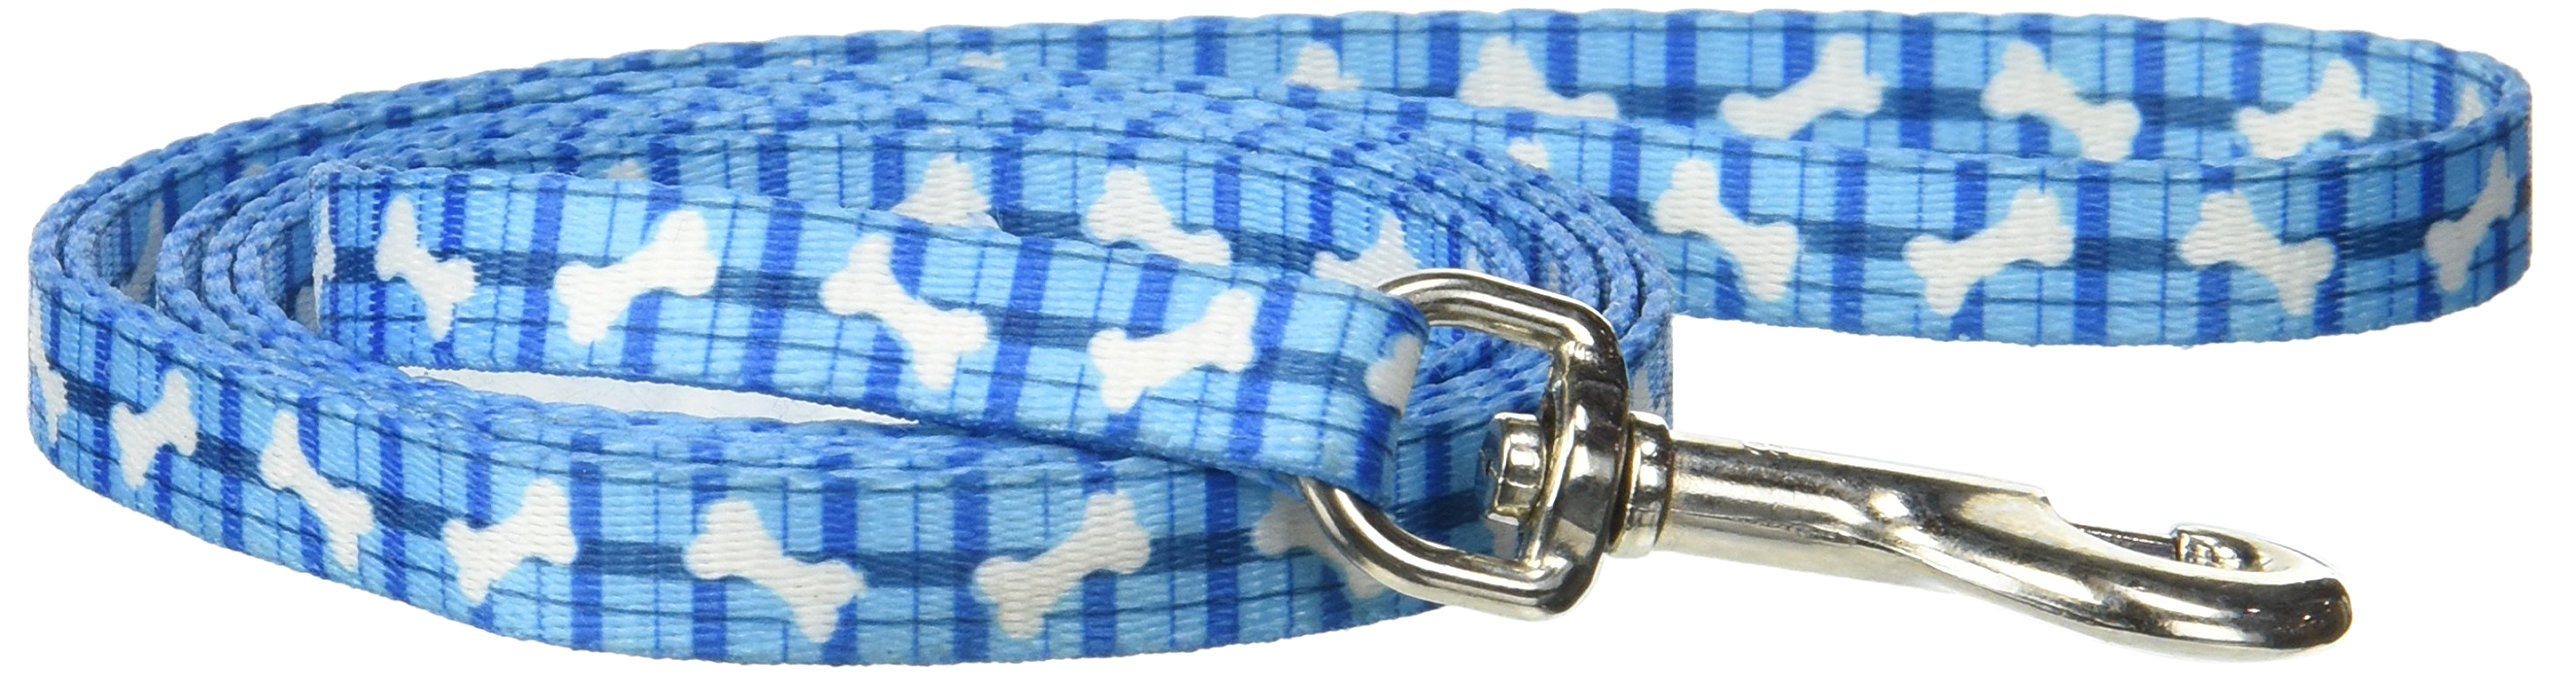 Pet Attire Styles Plaid Bones 4 Foot Dog Leash with a Width of 3/8 in.